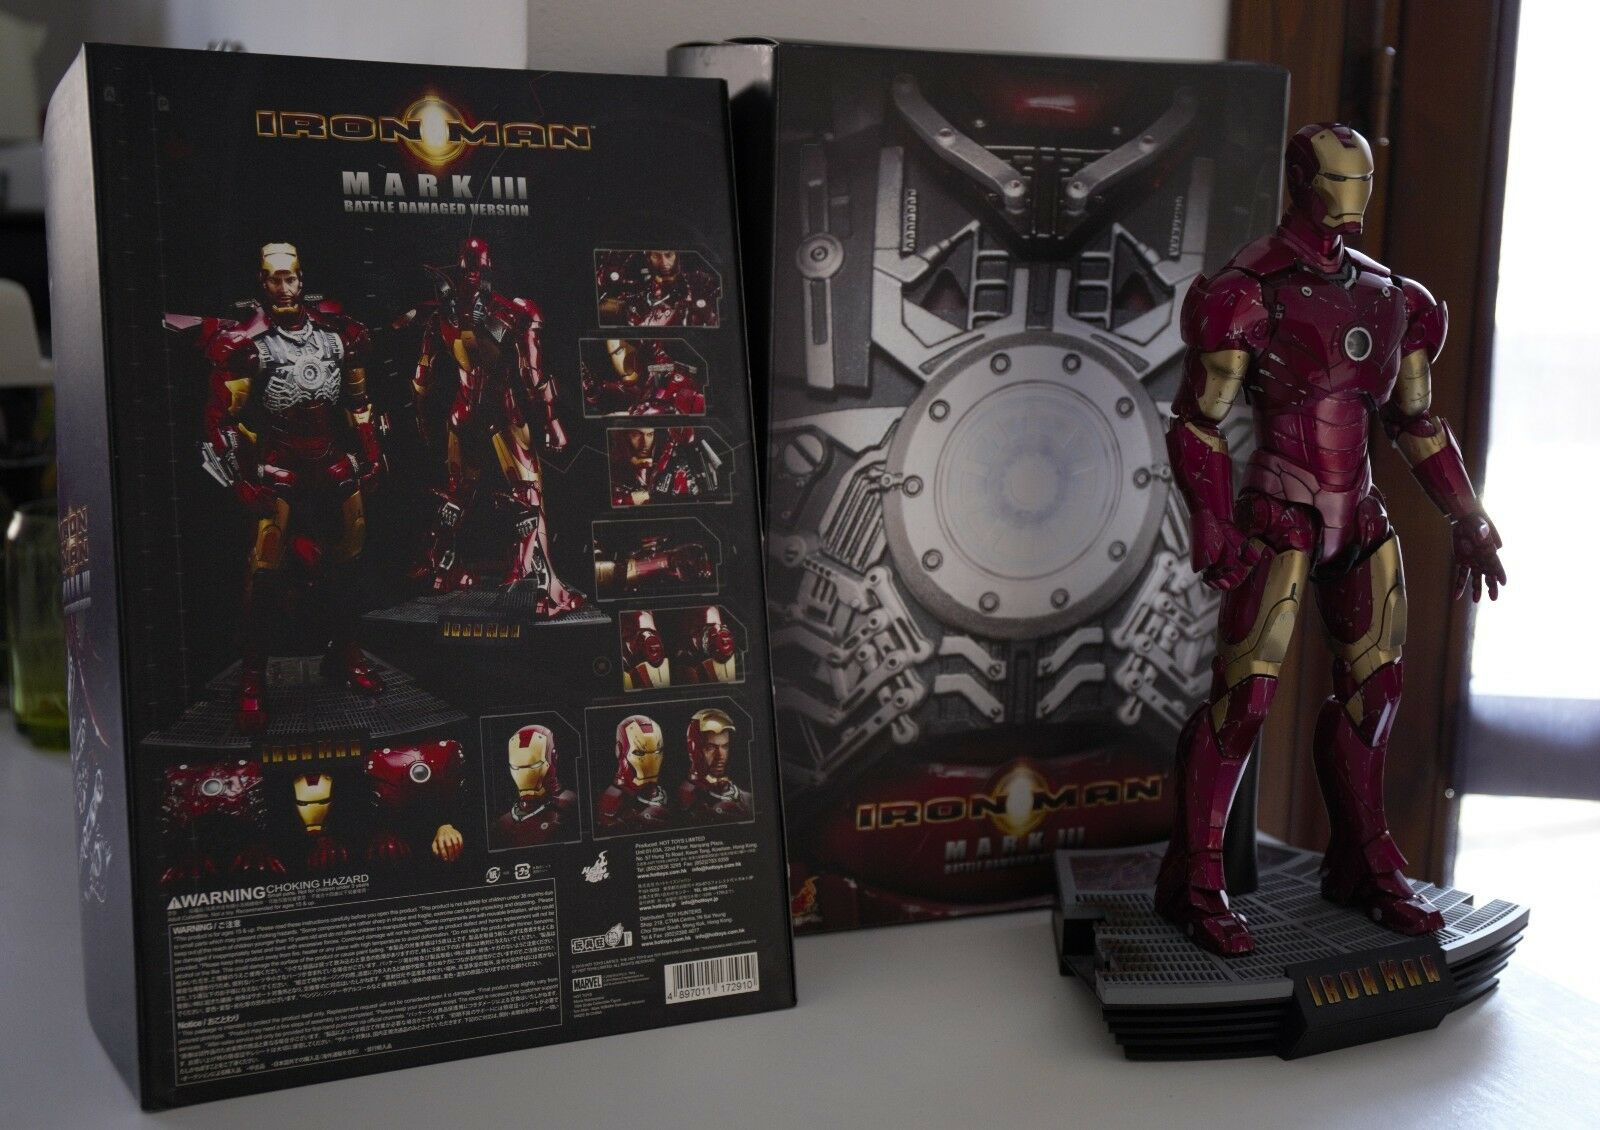 Hot Toys Iron Man Mac III Battle Damaged Version